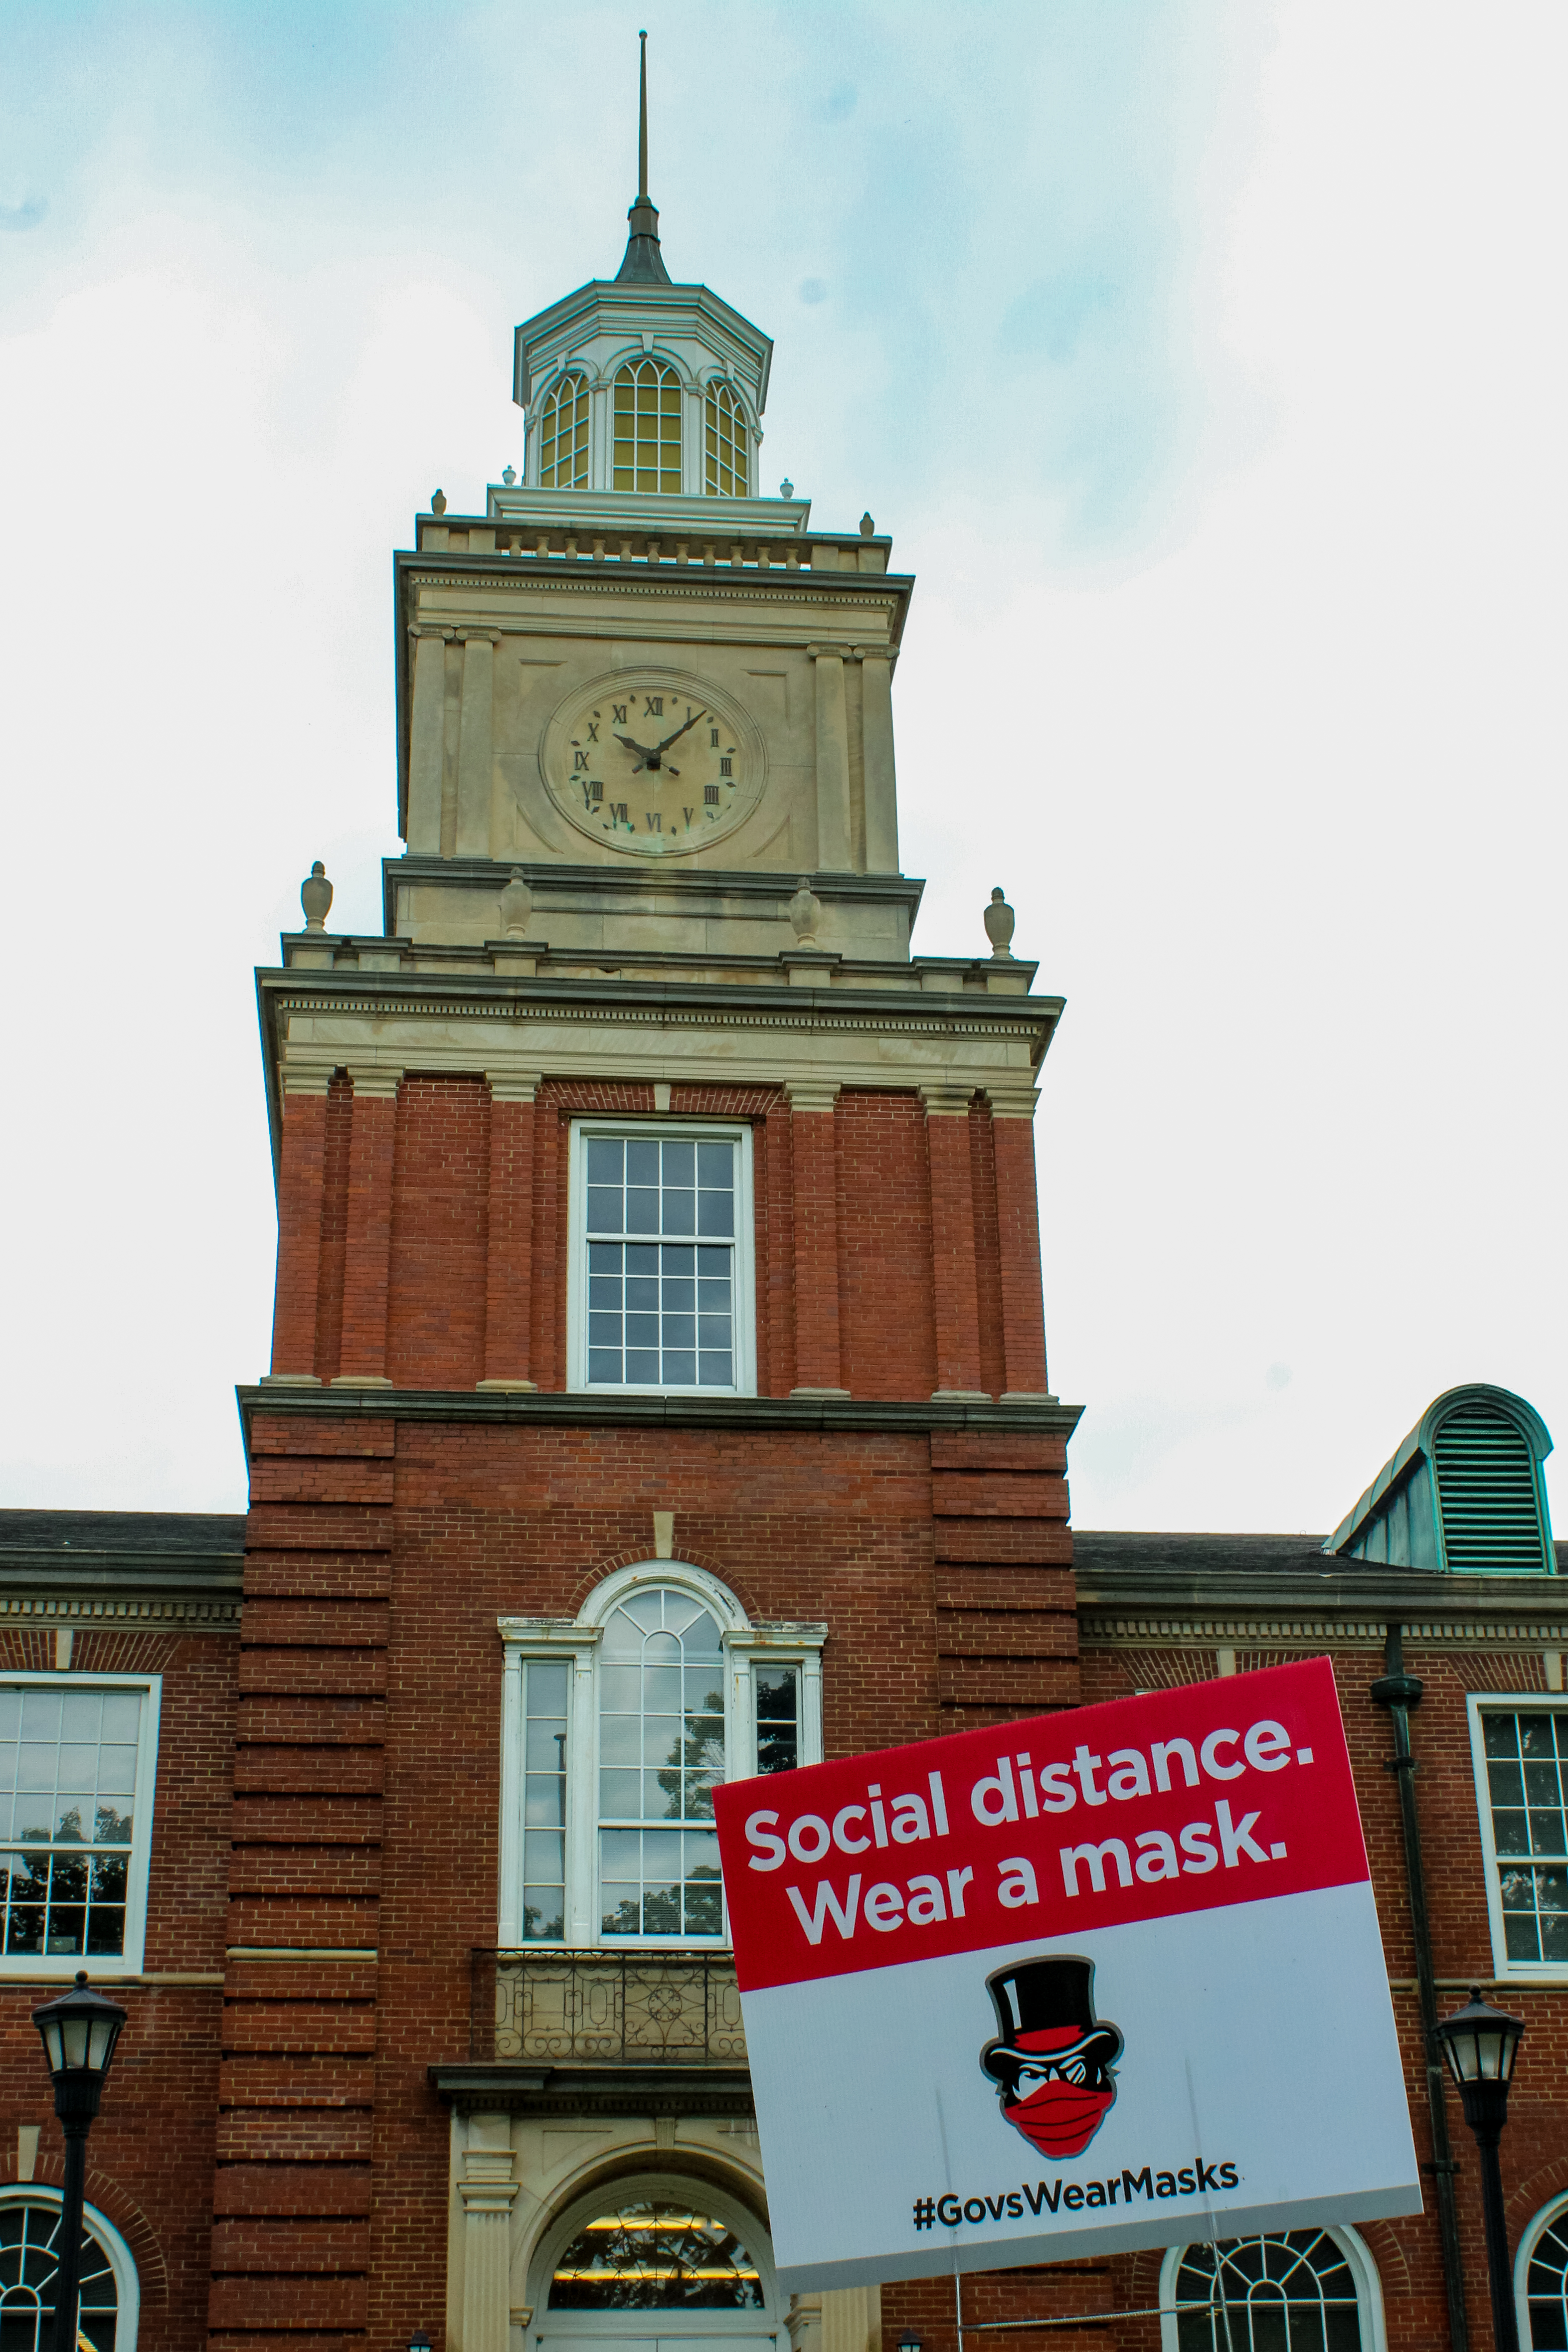 """A sign calling members of the Clarksville community to """"Social distance"""" and """"Wear a mask"""" is seen in front of the Browining building. NICHOLE BARNES 